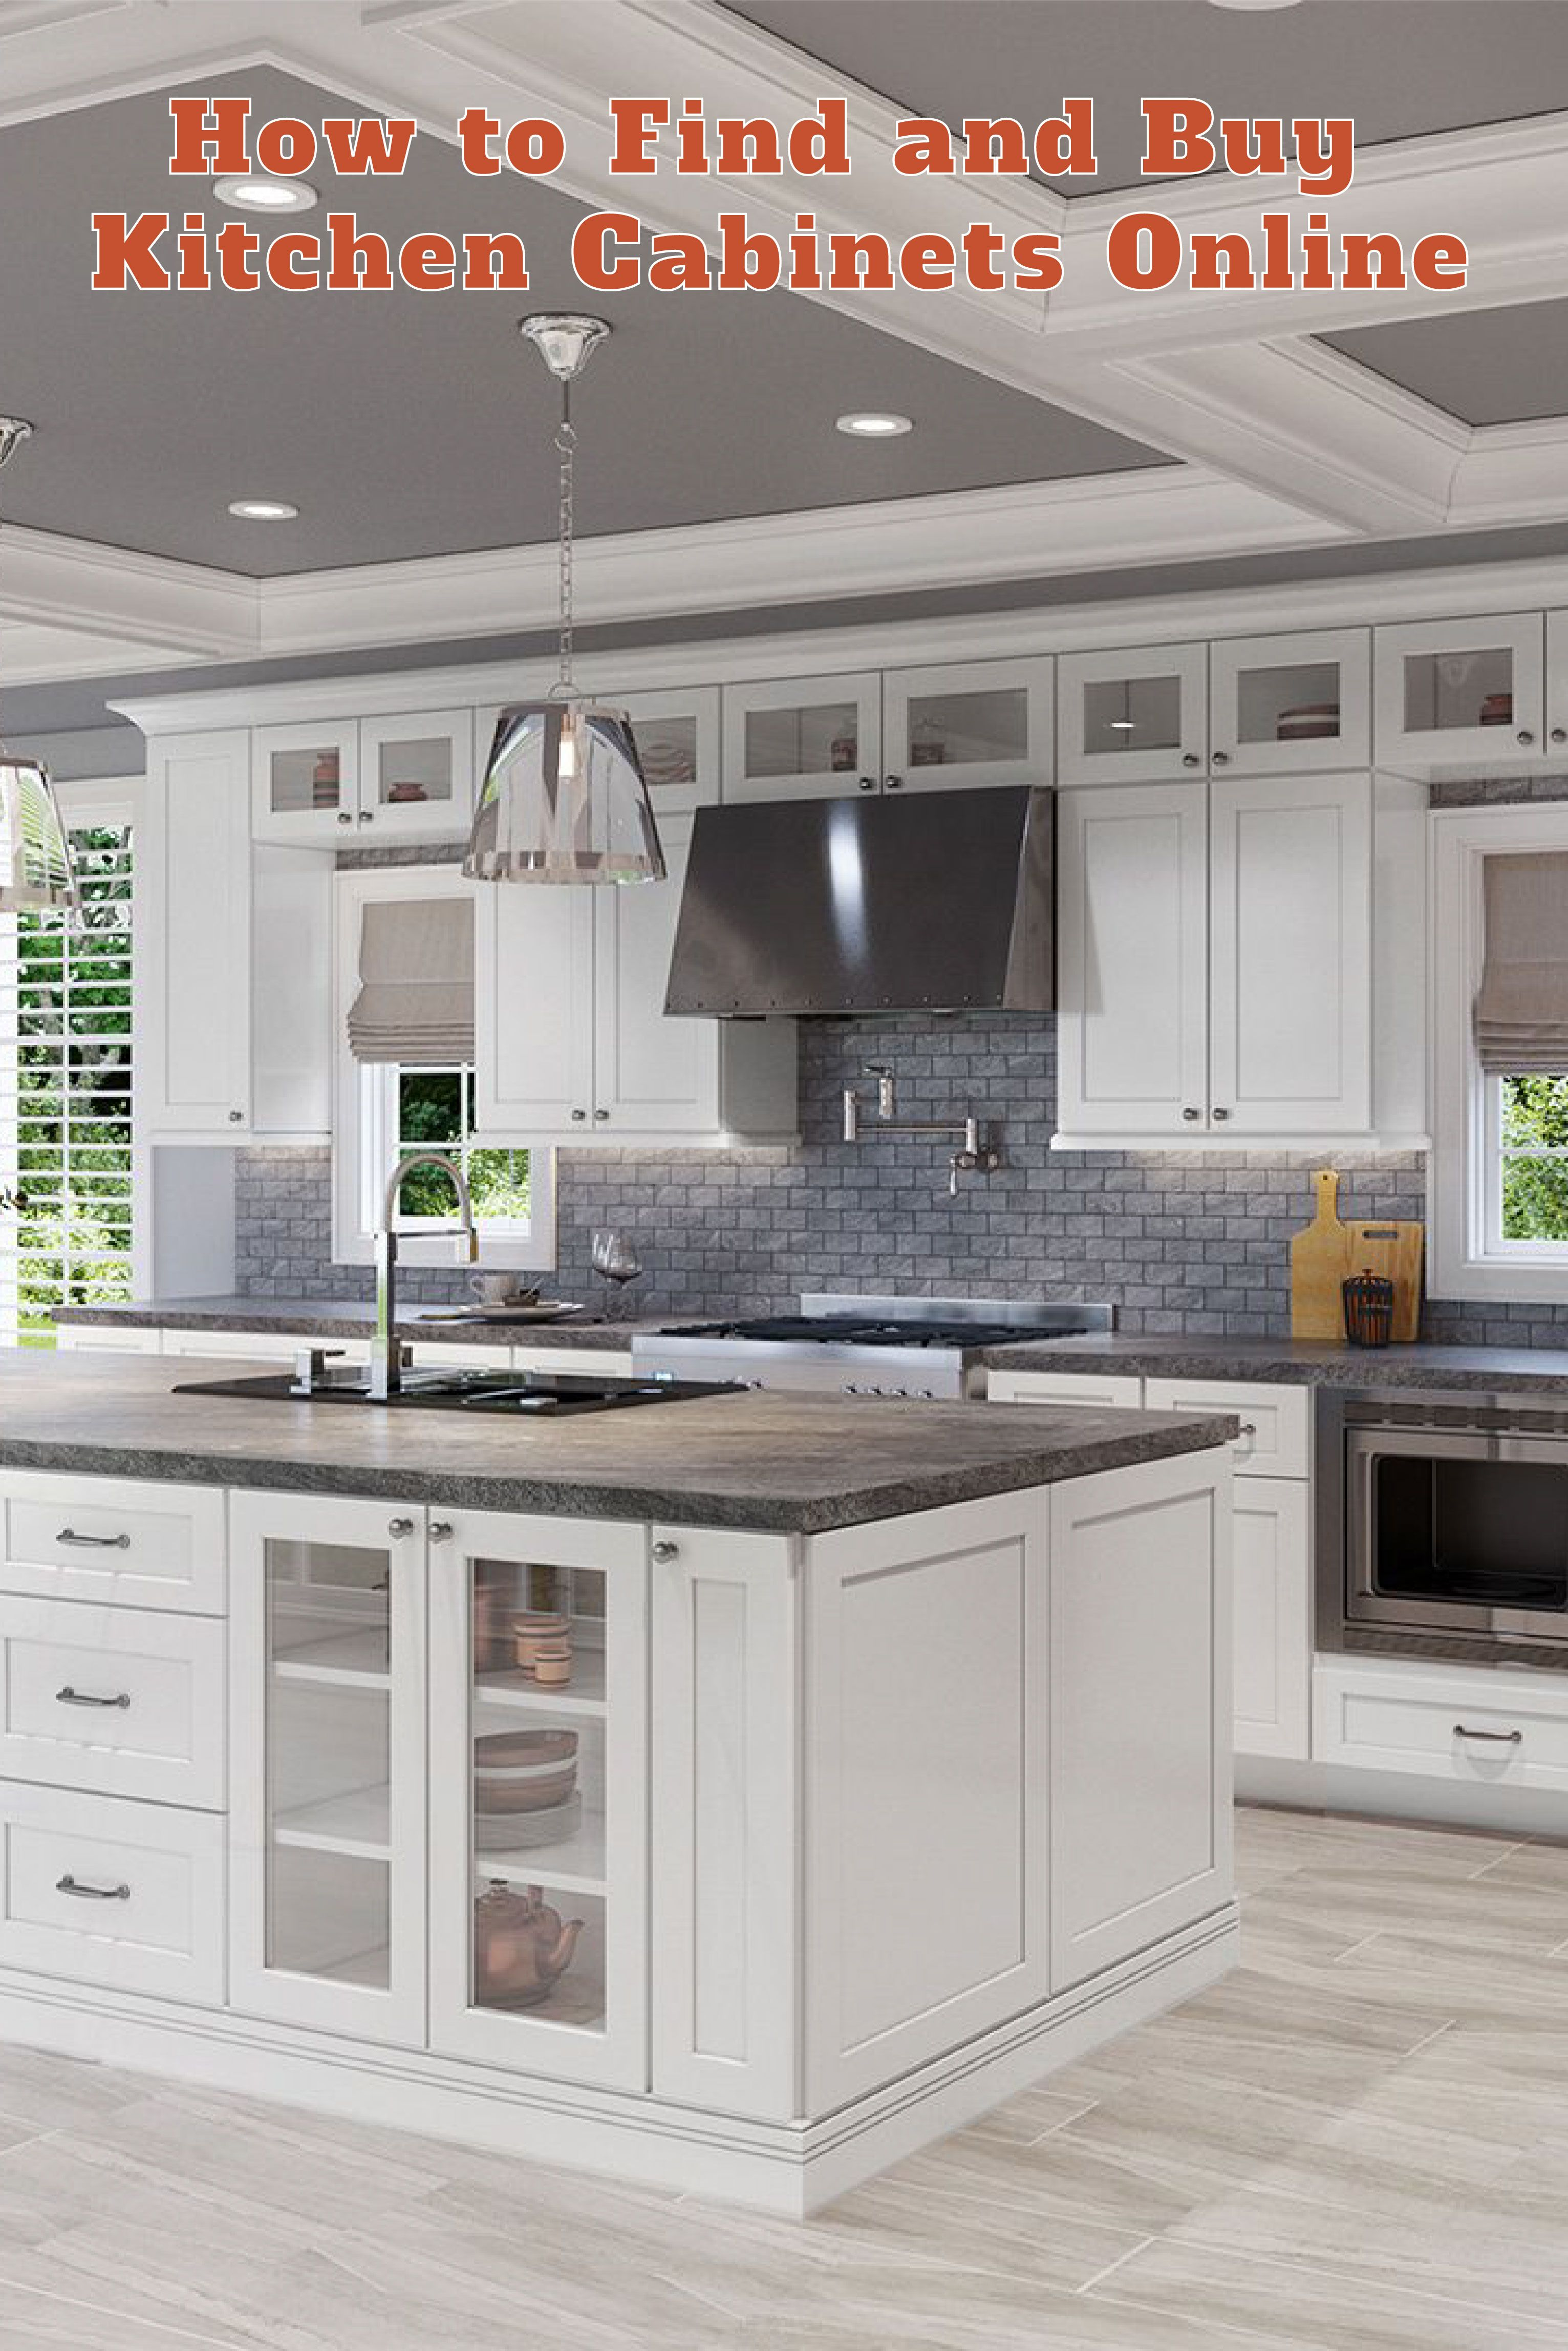 Tips For Finding And Buying Kitchen Cabinets Online Buy Kitchen Cabinets Online Online Kitchen Cabinets Kitchen Cabinets